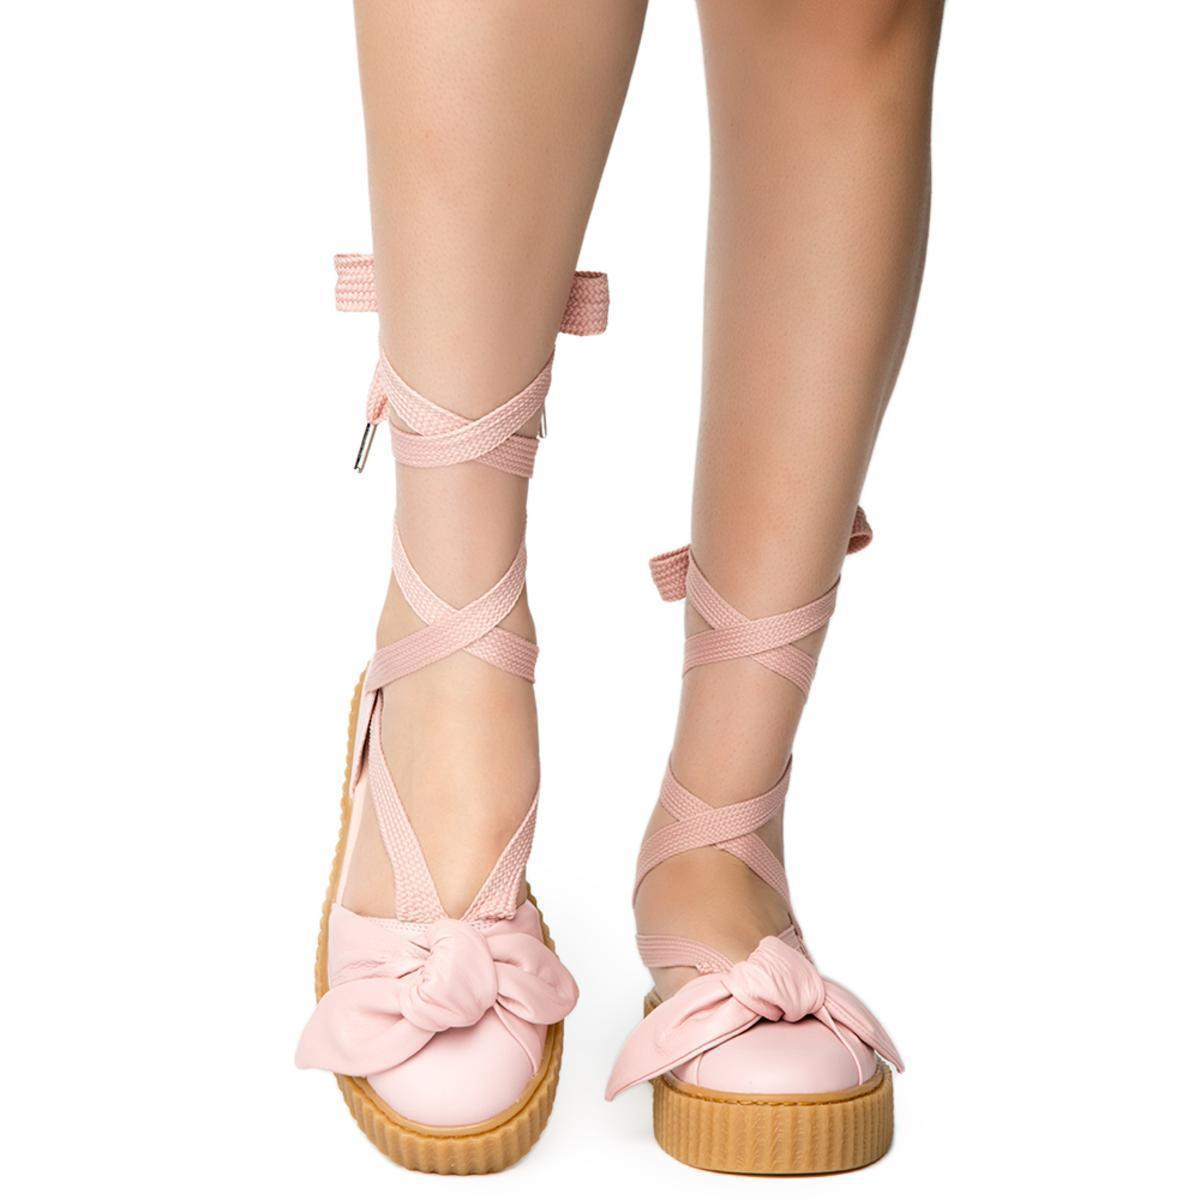 online retailer 256f8 29a25 Women's Pink Bow Creeper Sandal